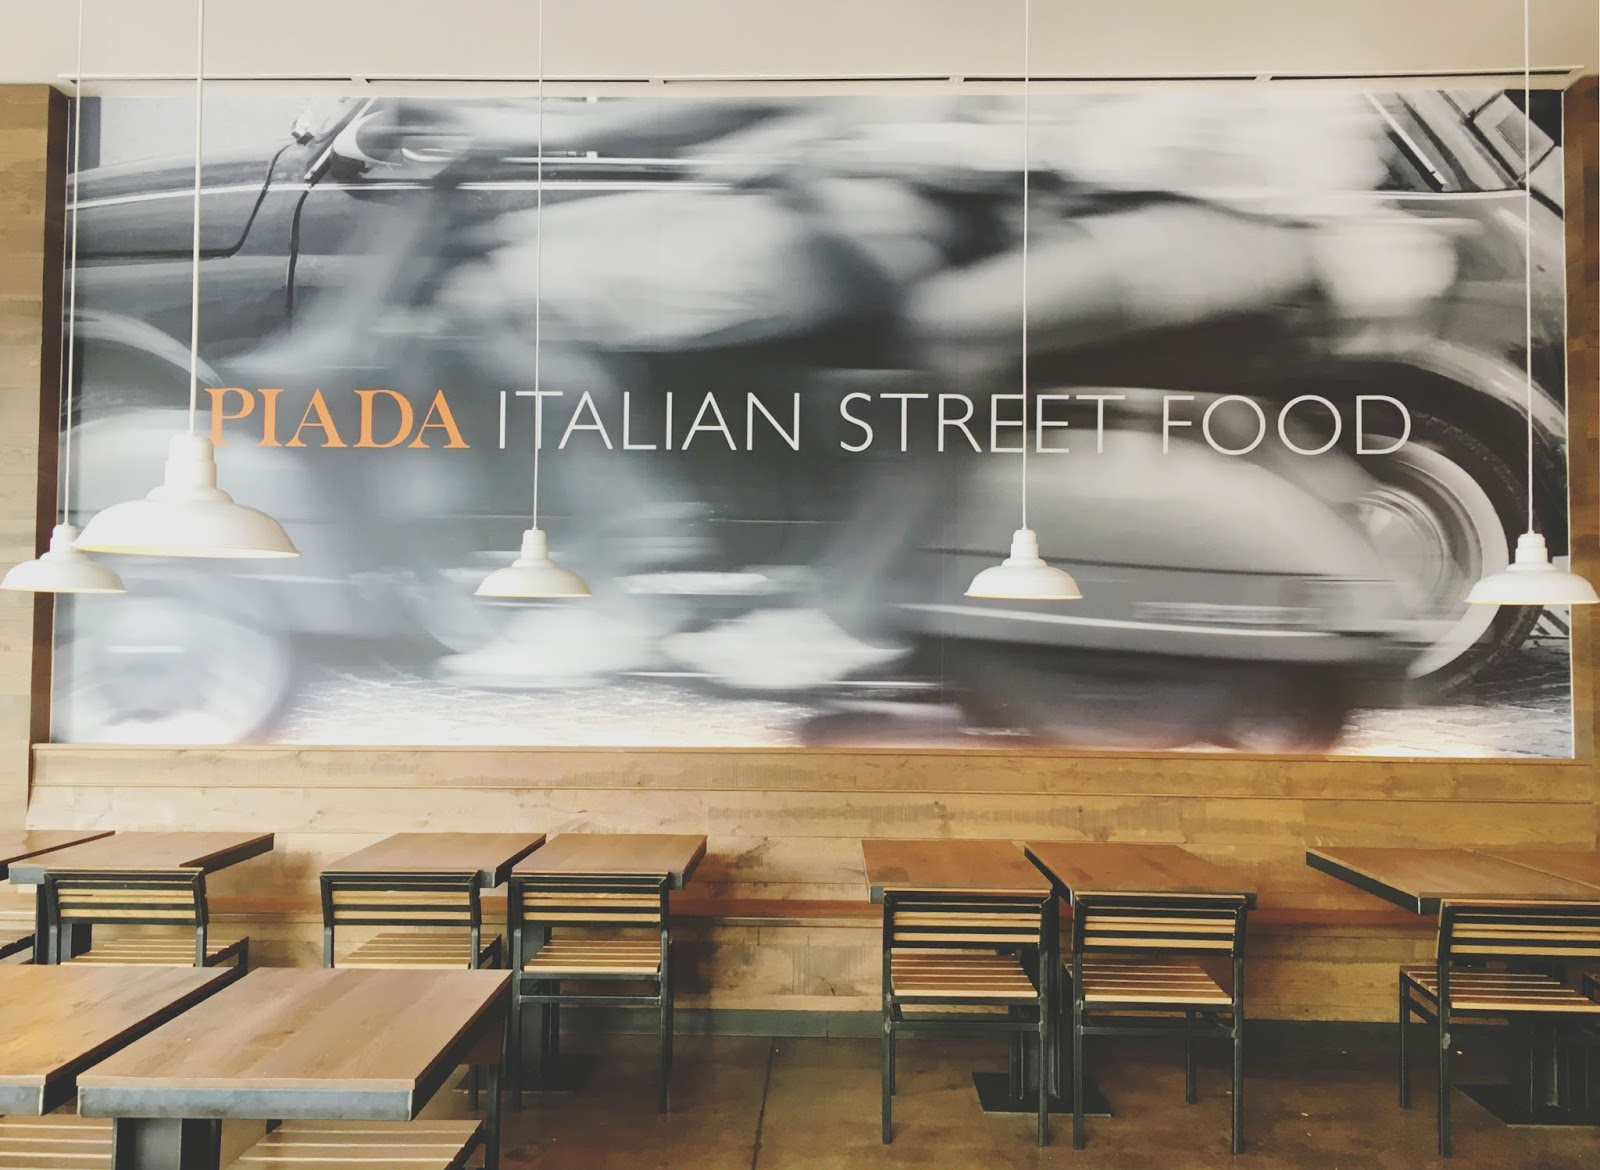 Piada Italian Street Food - a restaurant in Houston, Texas